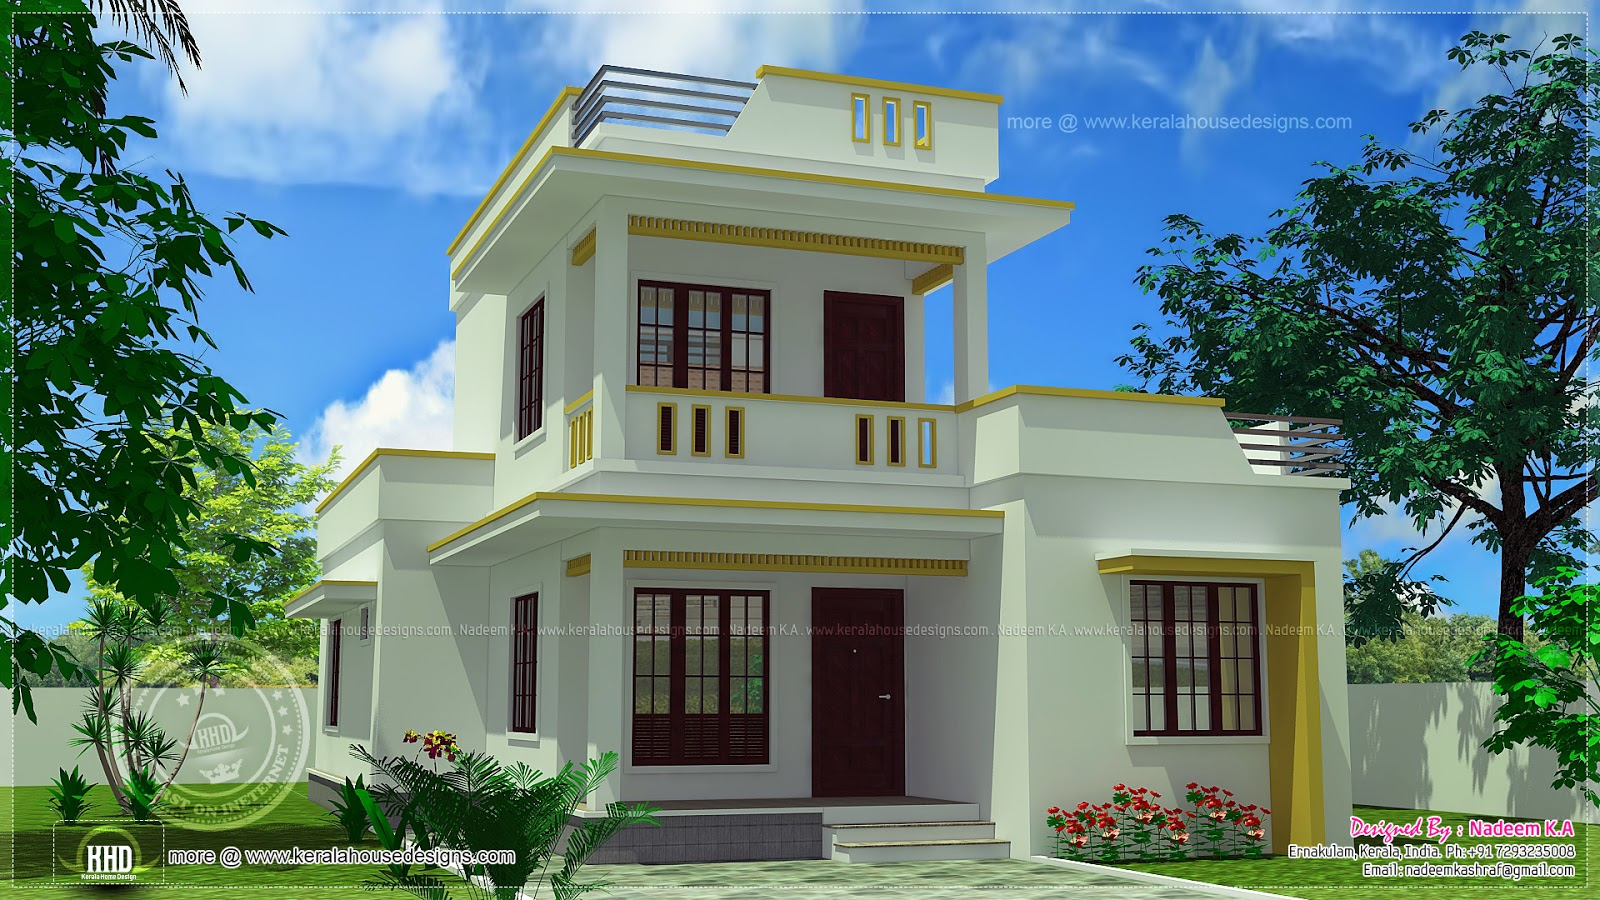 August 2013 Kerala Home Design And Floor Plans: home building design